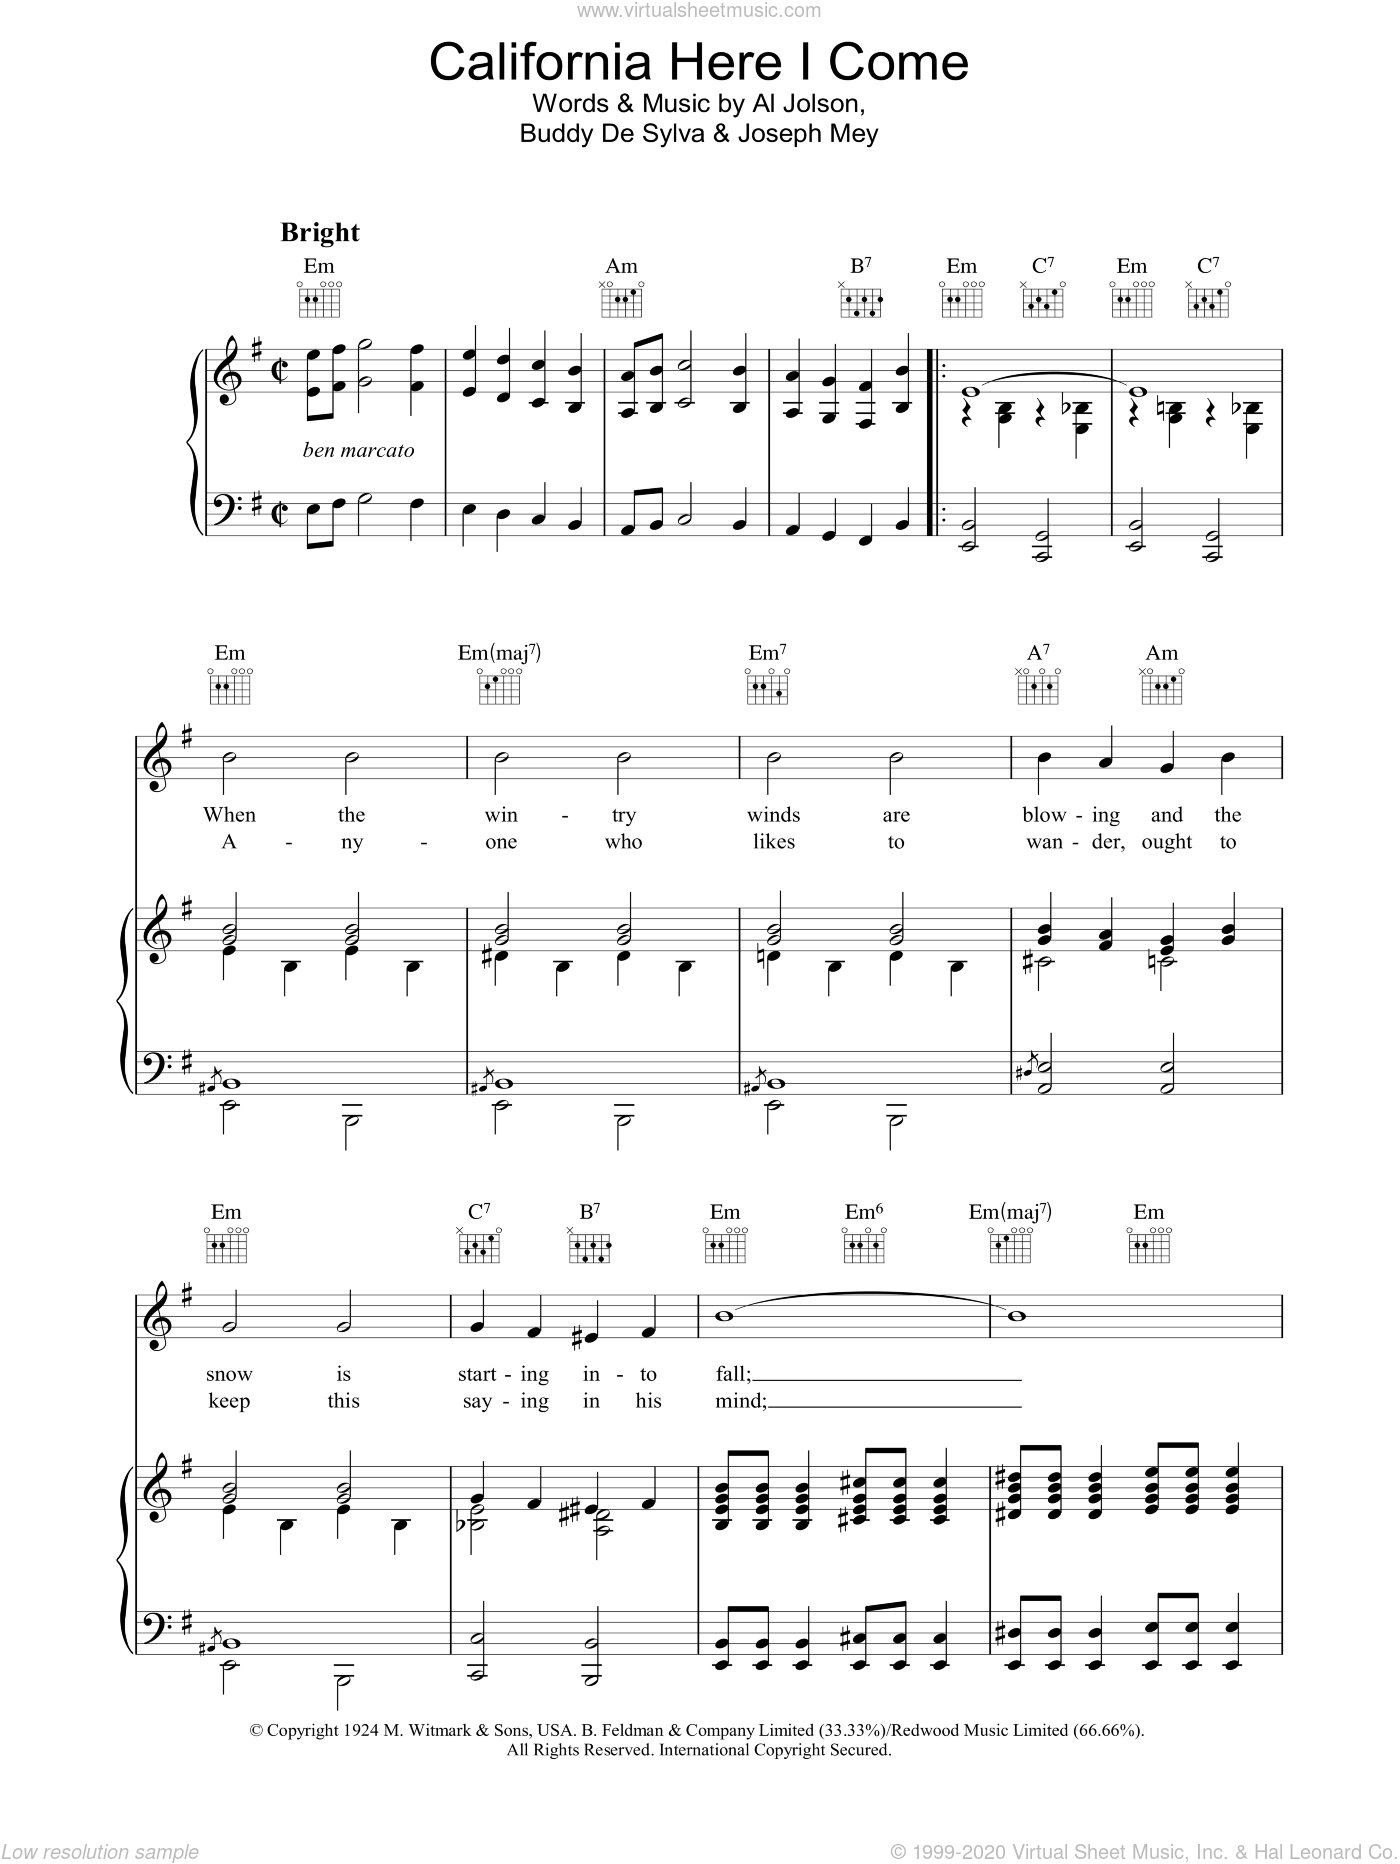 California Here I Come sheet music for voice, piano or guitar by Al Jolson and Joseph Meyer, intermediate voice, piano or guitar. Score Image Preview.